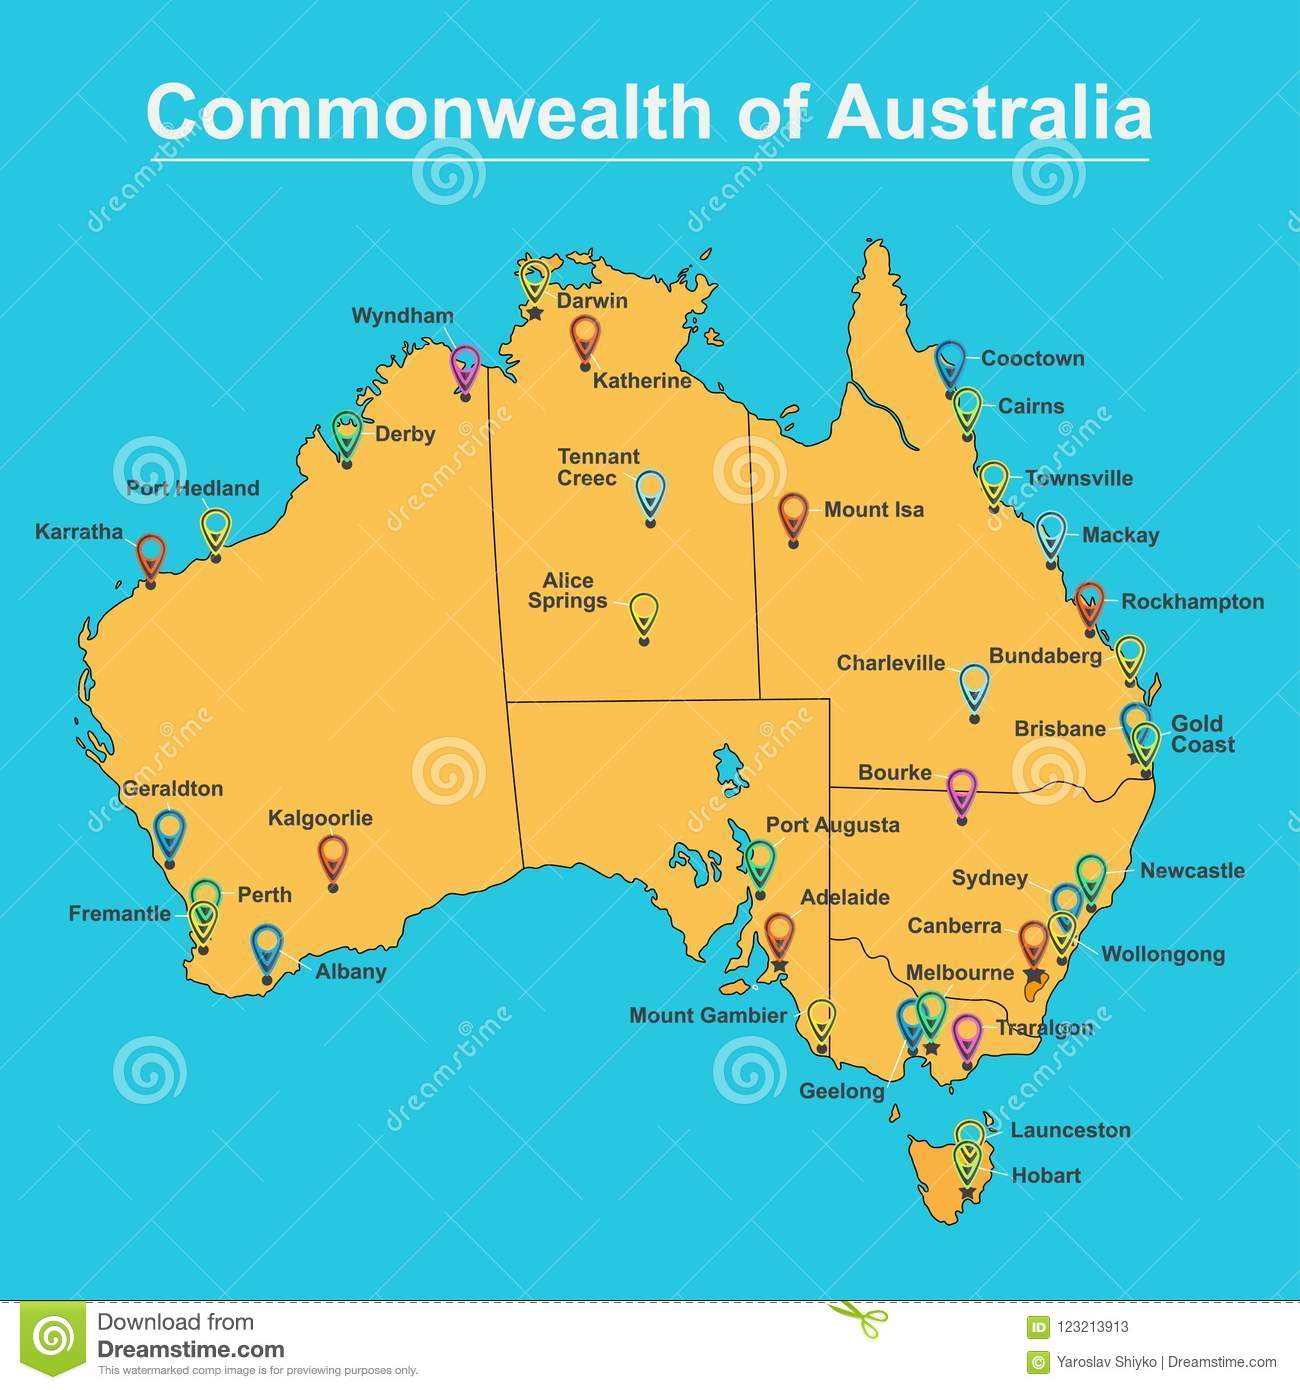 Map Of Australia And Cities.Map Of Australia With Major Towns And Cities Vector Illustration